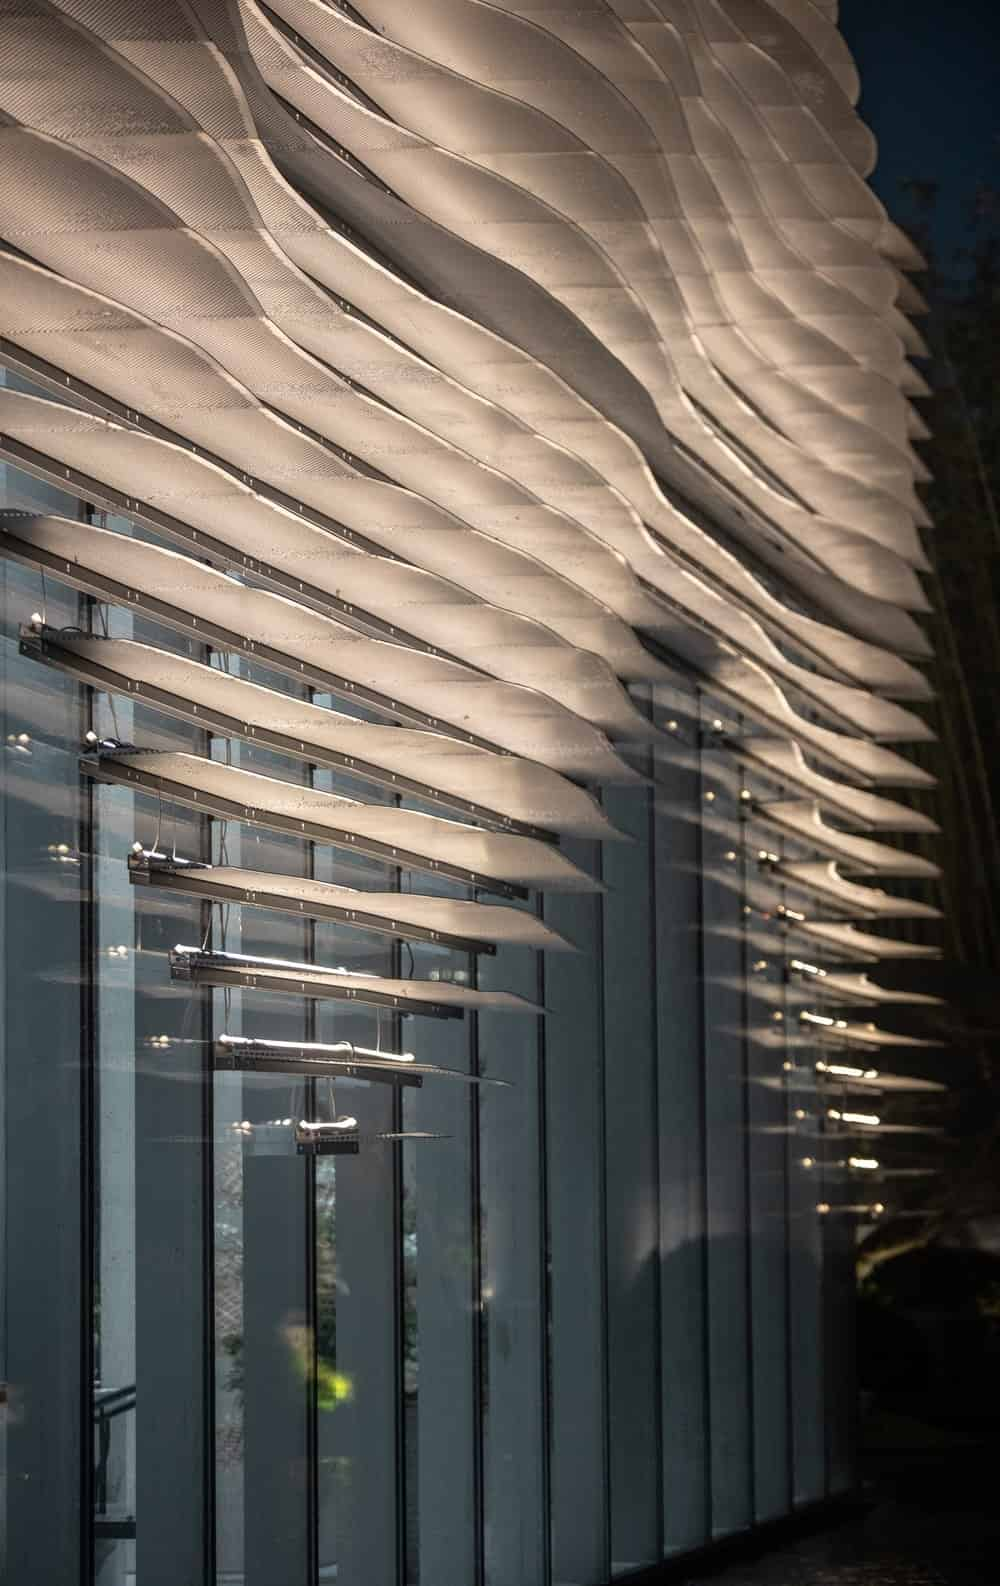 The exterior panels of the building lights up with a warm glow.